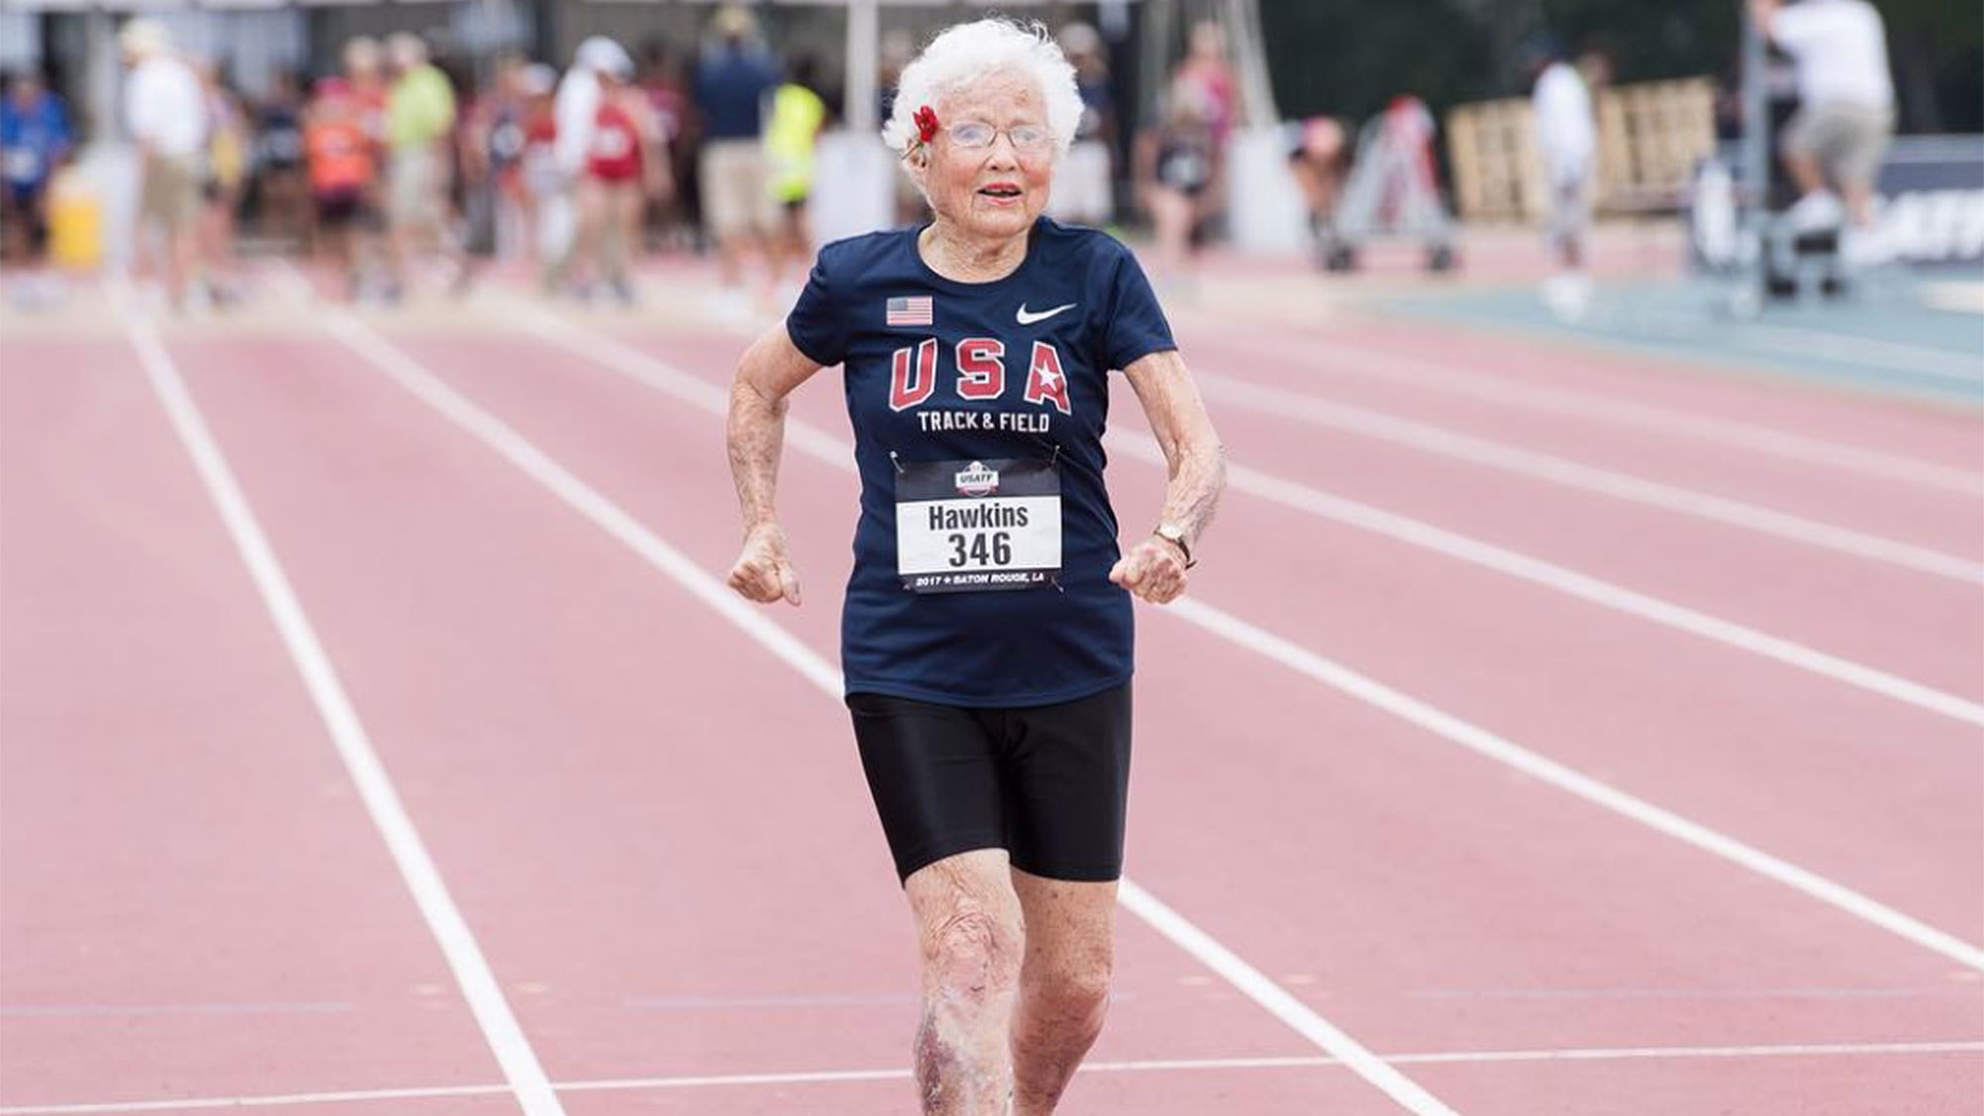 101-Year-Old Woman Breaks 100-Meter Record for Her Age Group -- and Only Started Racing Last Year